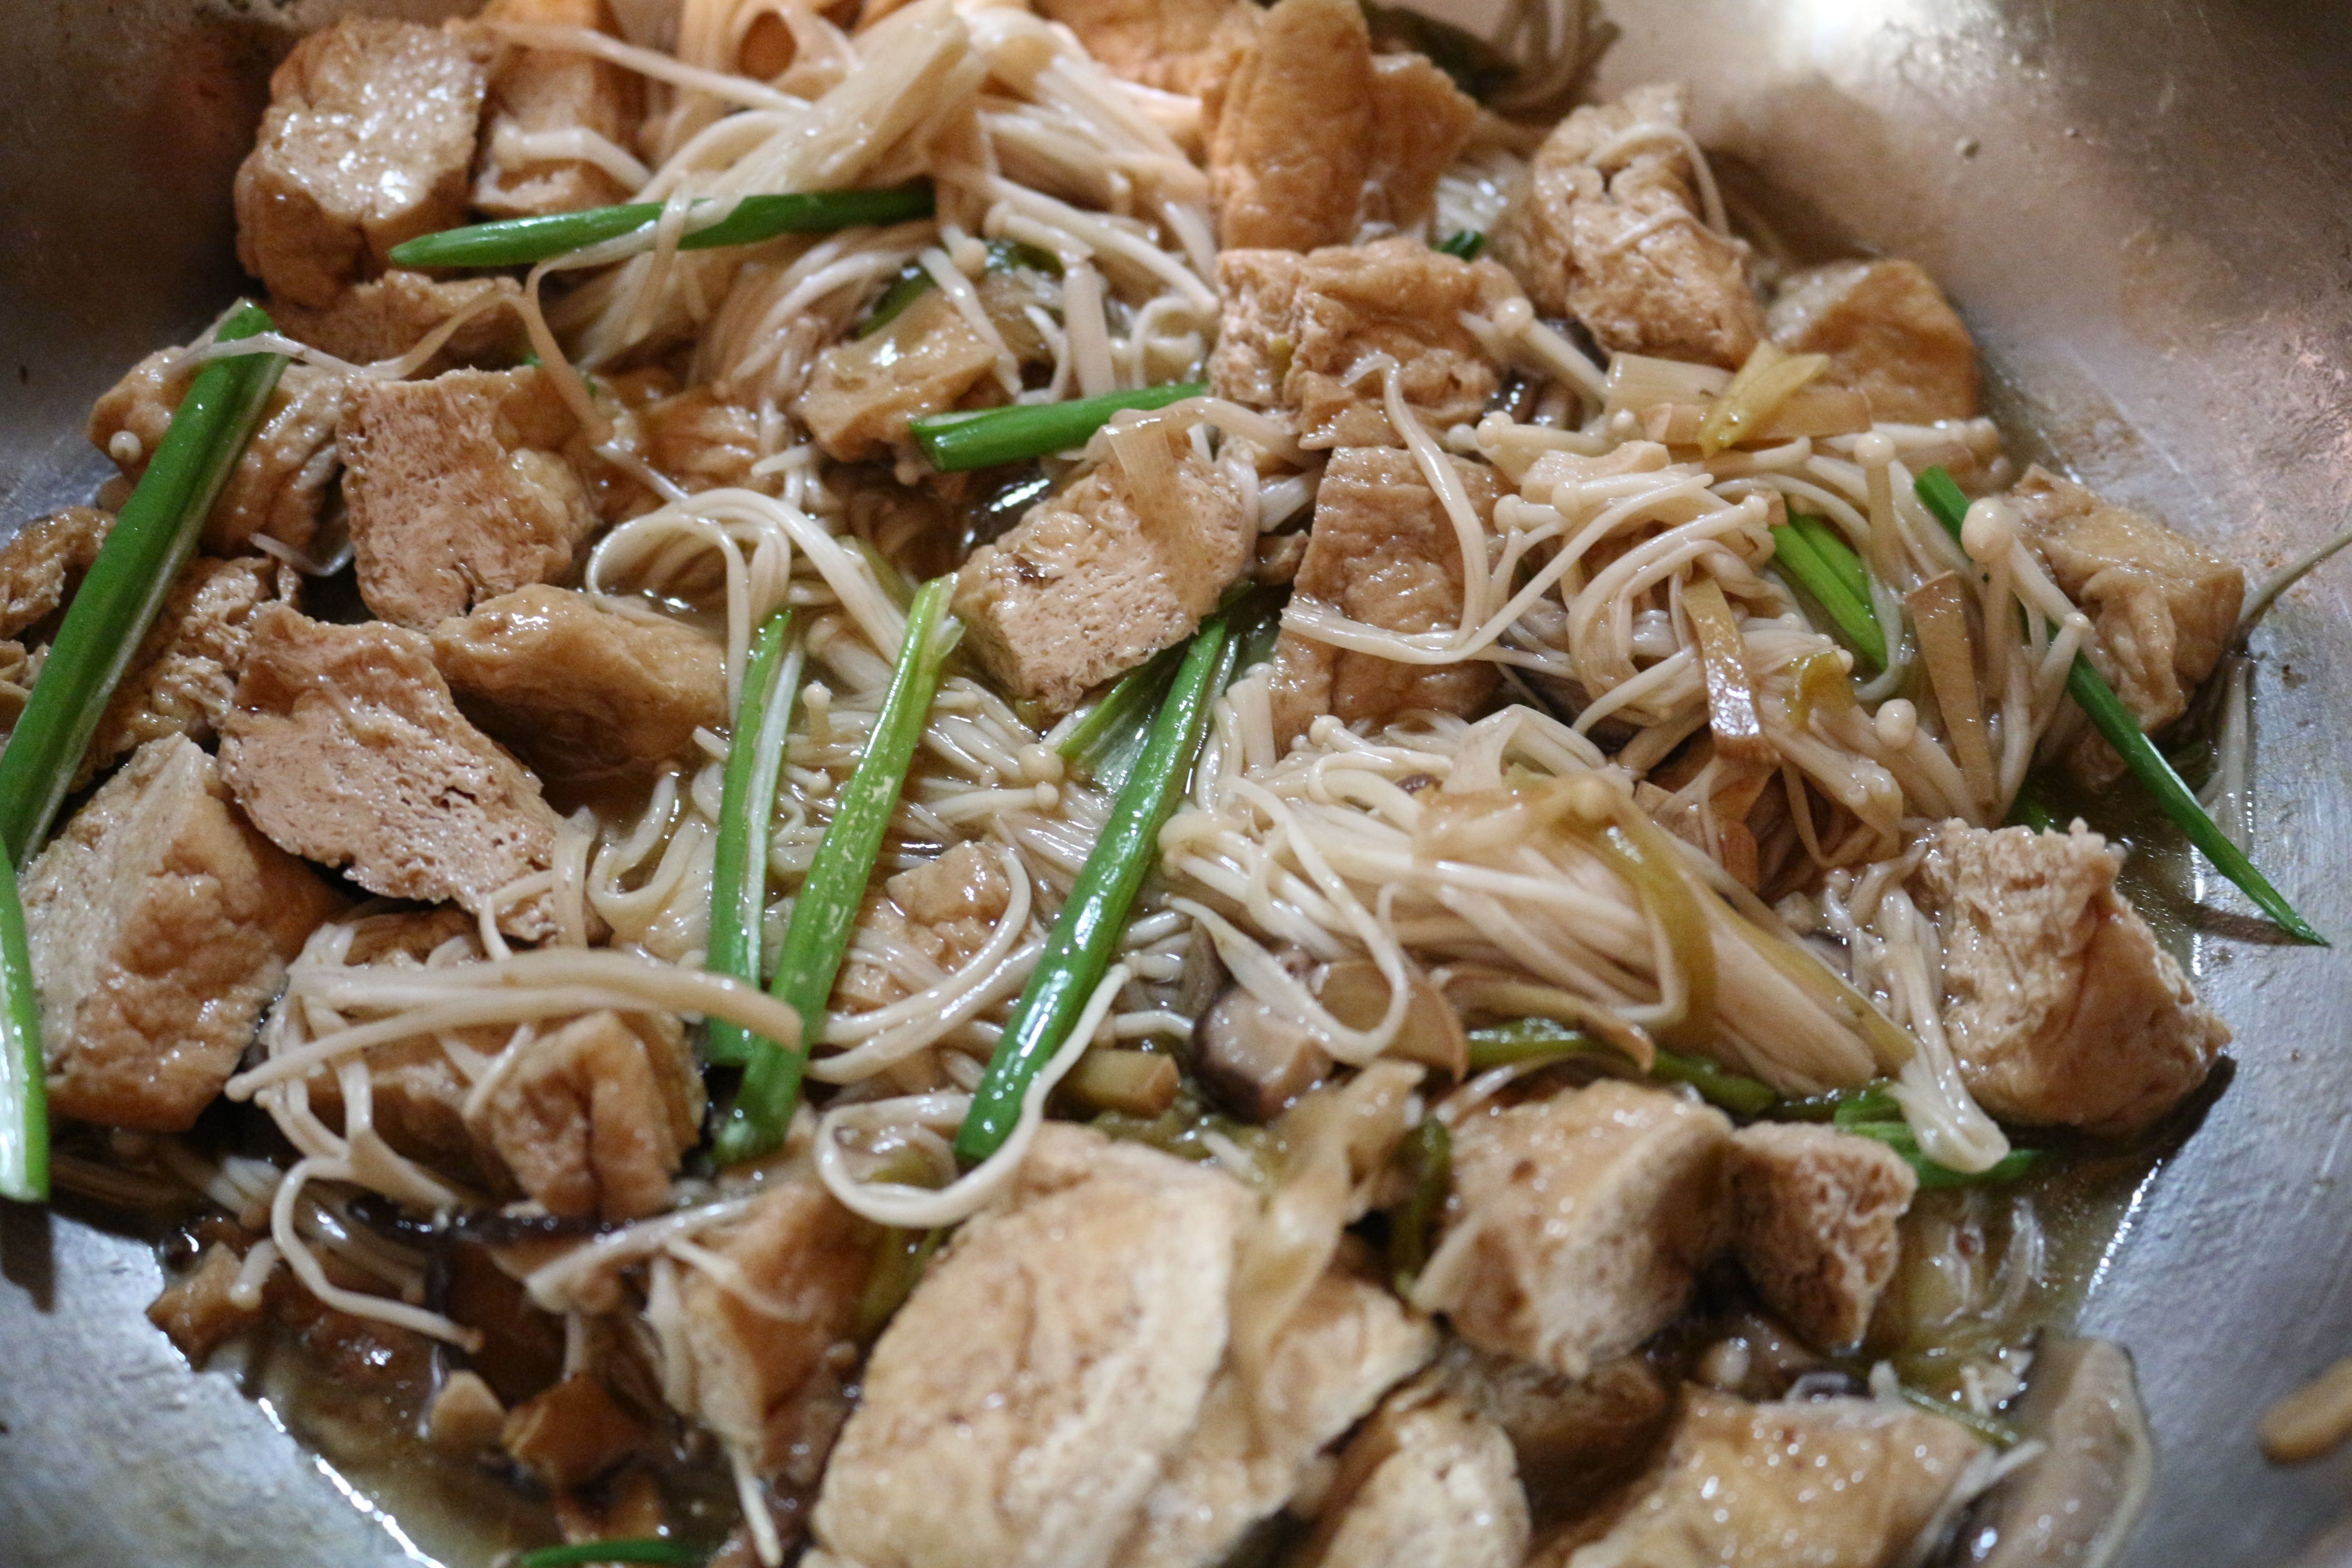 can a vegetarian dish be very tasty and not boring of